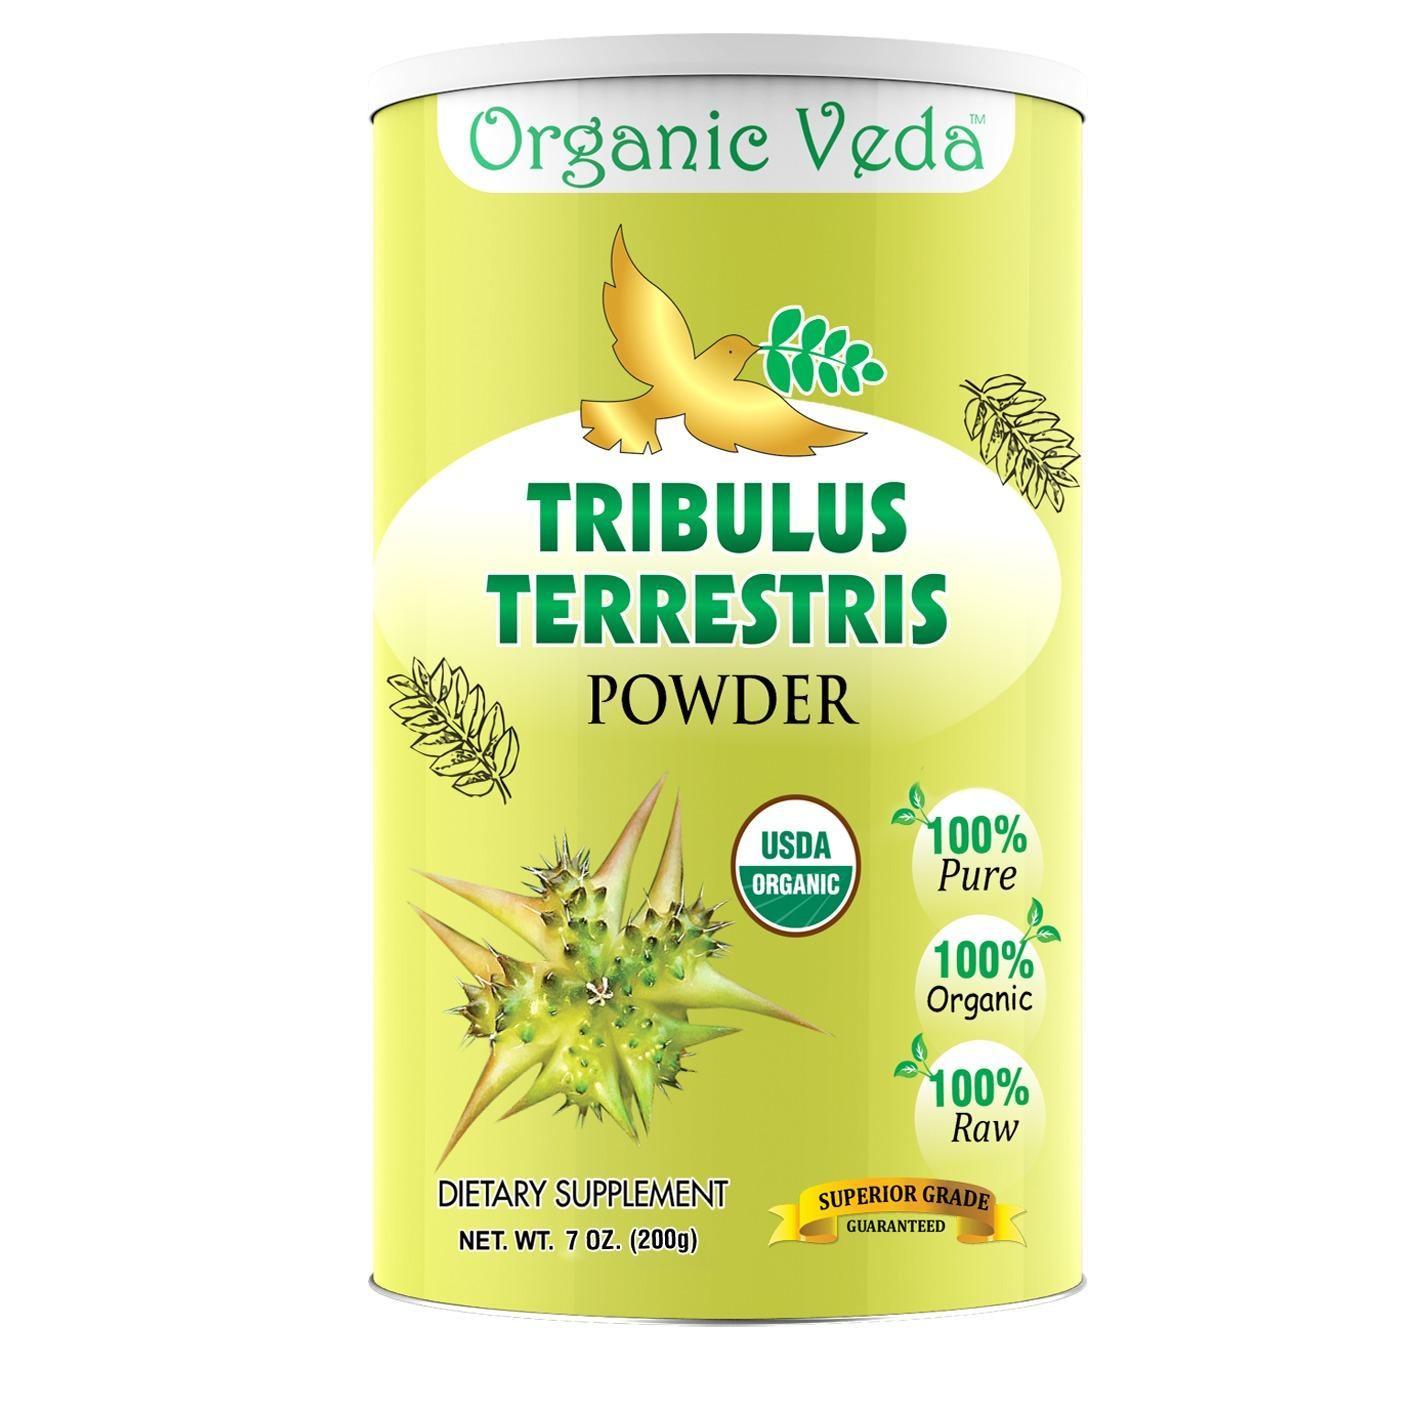 Organic Tribulus Terrestris Powder 200Grams 100 Pure And Natural Herbs Raw Organic Super Food Supplement Non Gmo Gluten Free Us Fda Registered Facility ★ Usda Certified Organic ★ All Natural For Sale Online